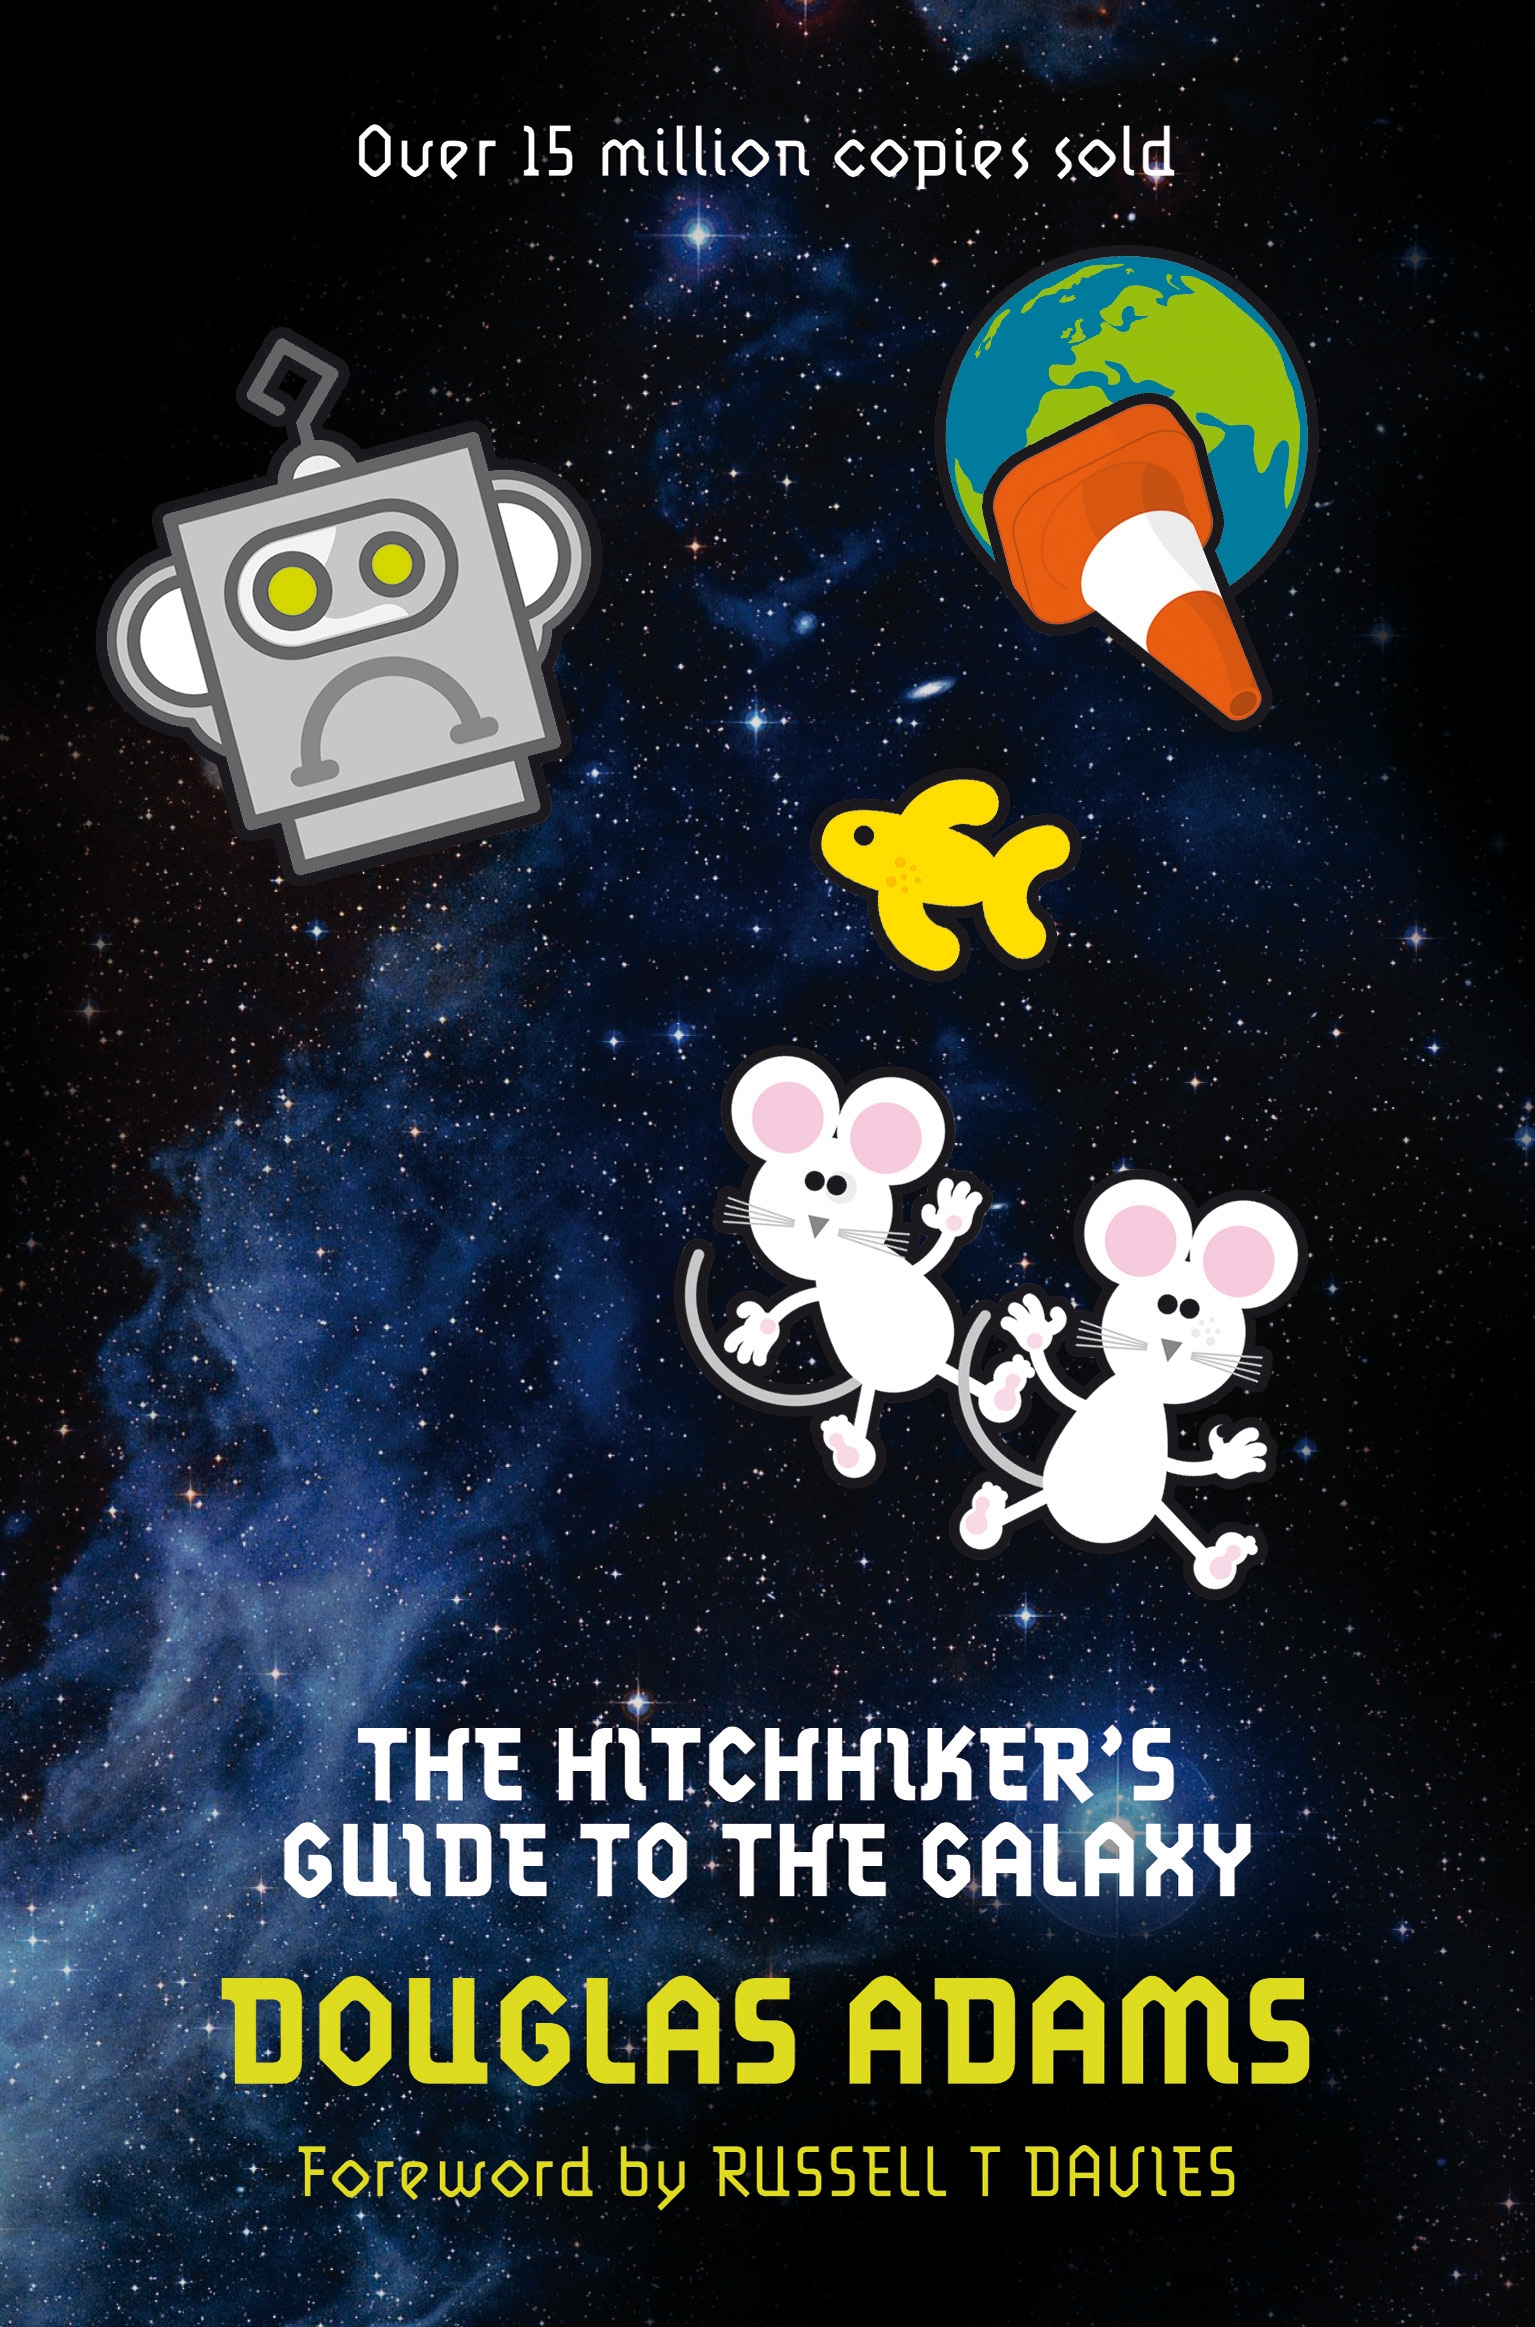 Hitchhikers Guide to the Galaxy.jpg